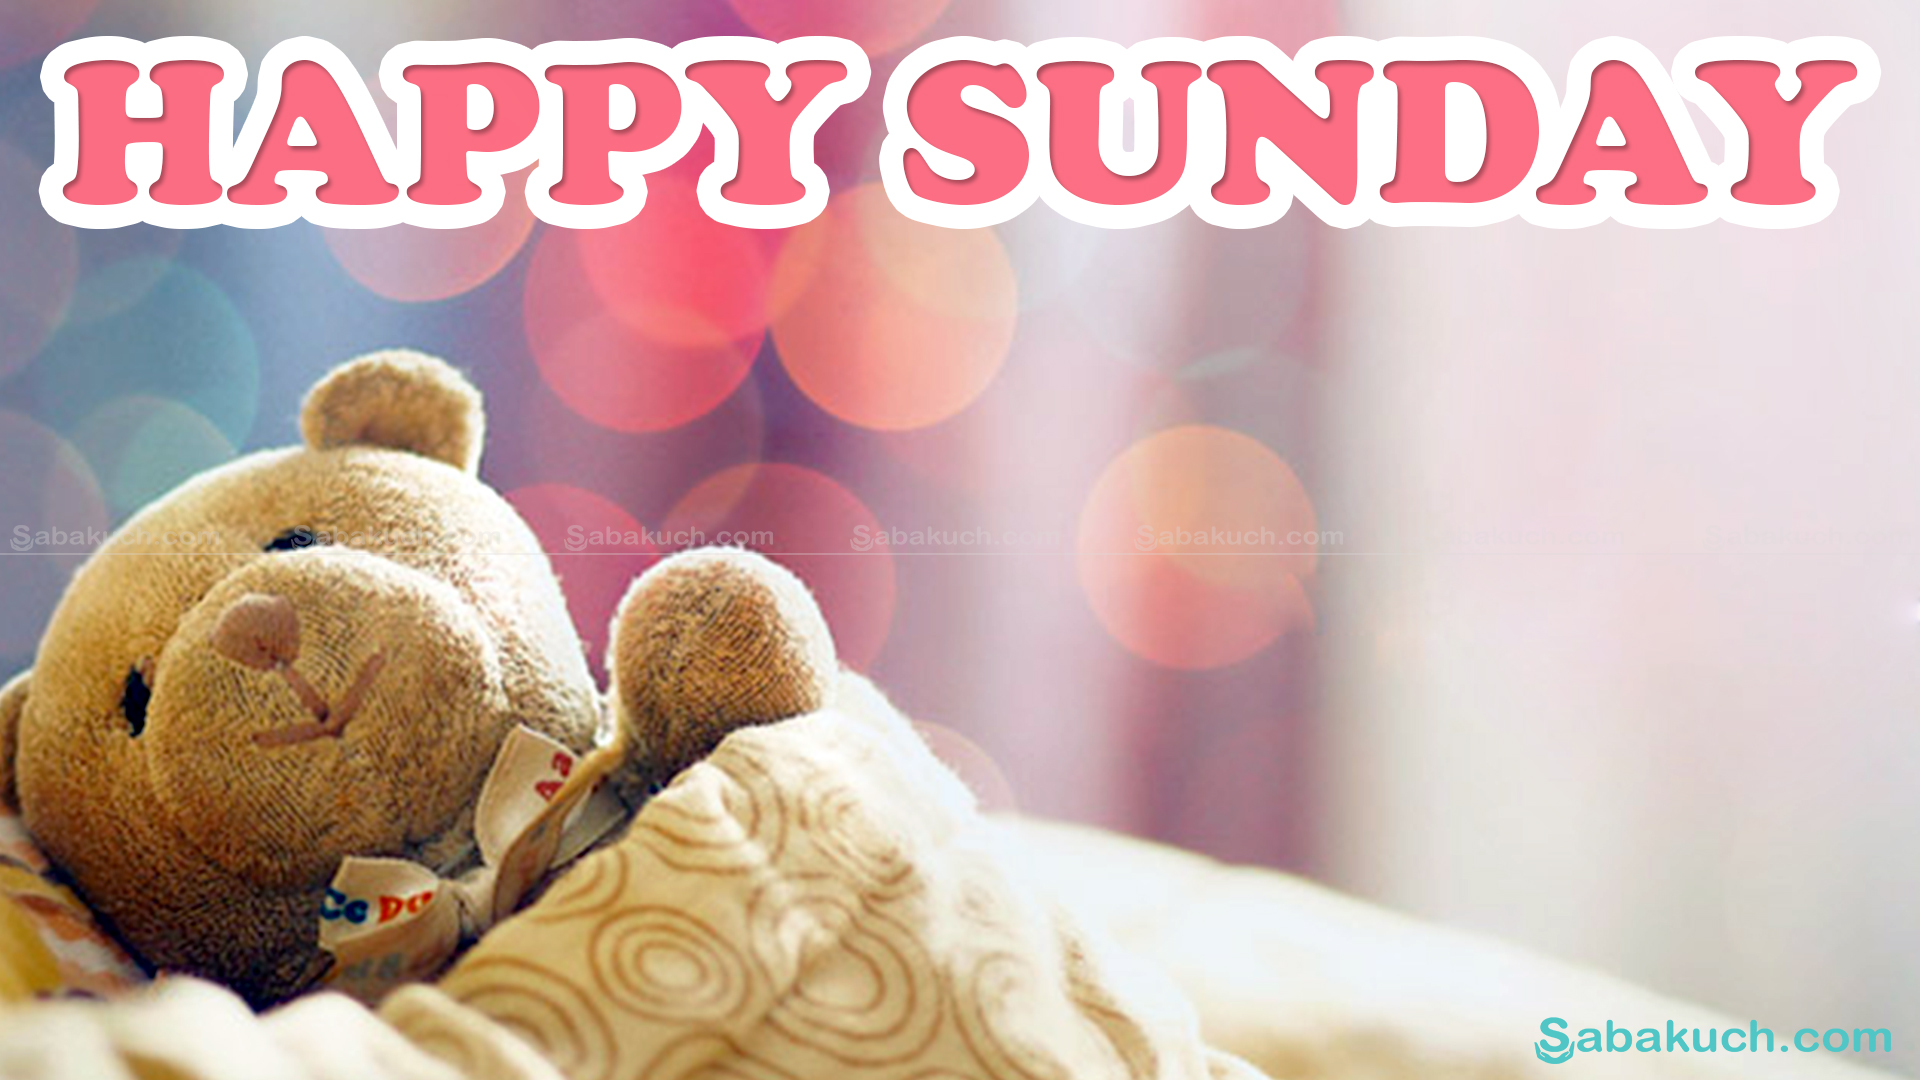 Happy Sunday Image,Wallpapers,Pictures,Photos-Sabakuch